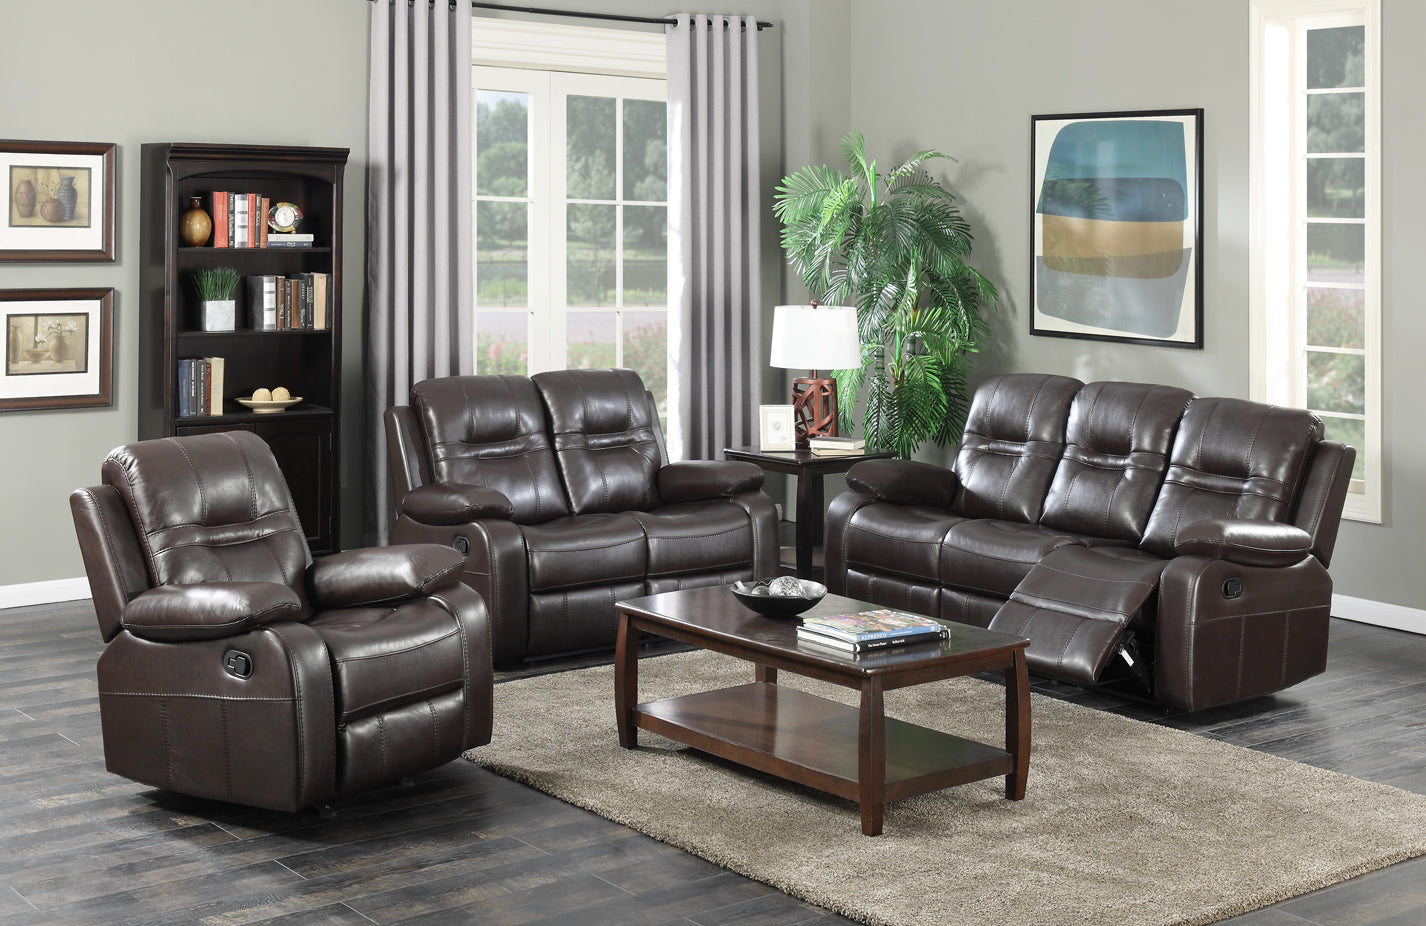 Napolean Recliner Series - Brown